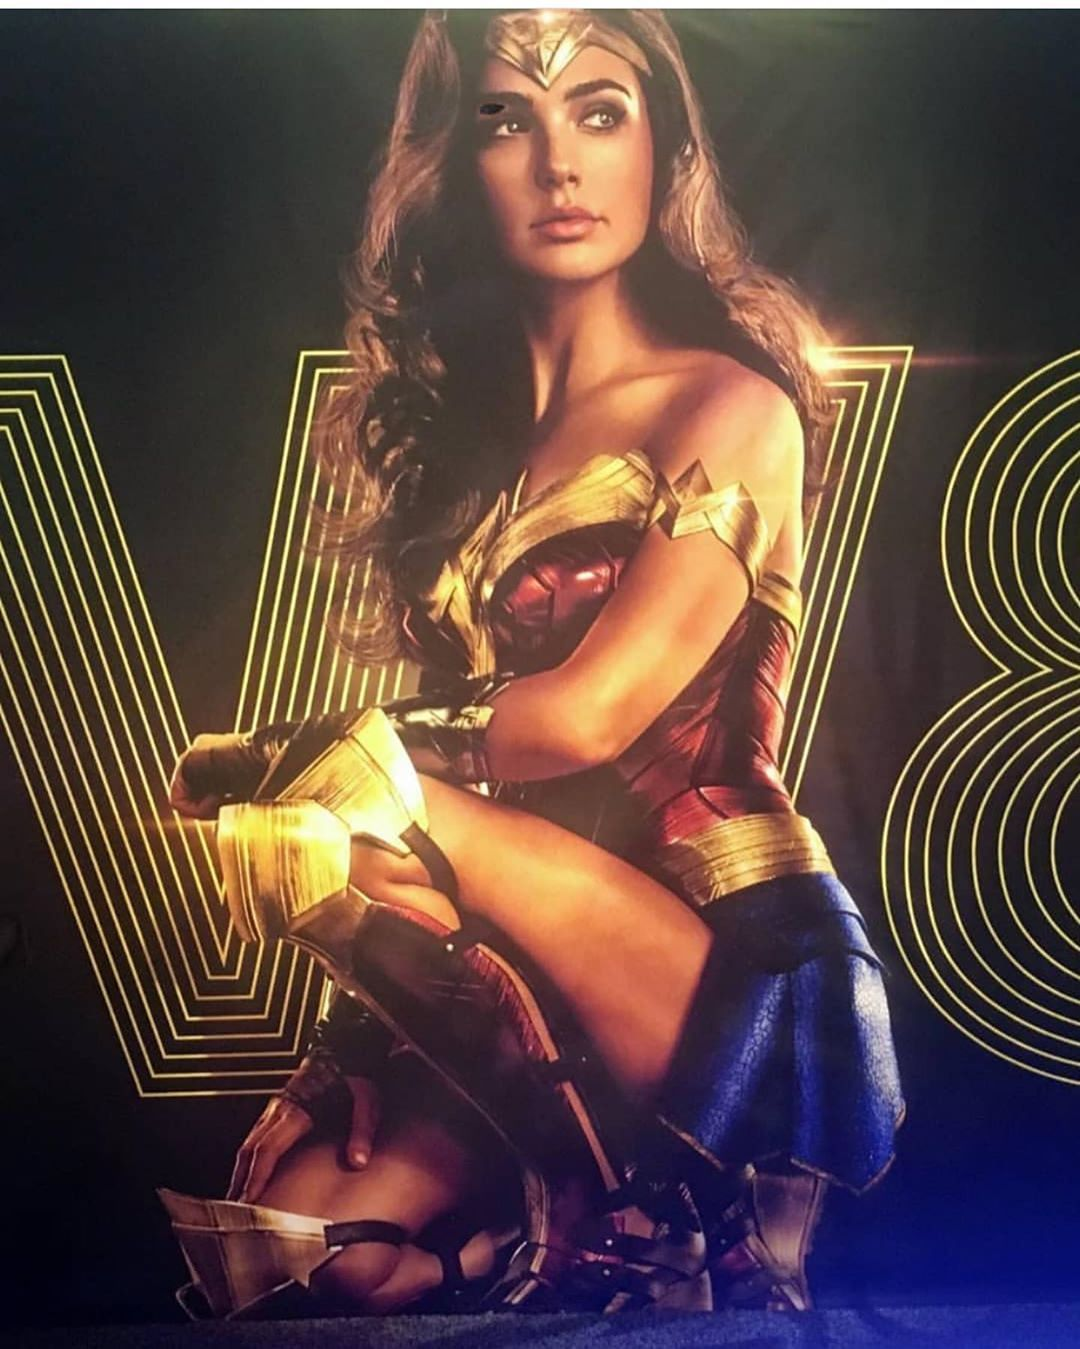 And So It Begins Wonder Woman 1984 Hits Theaters Worldwide On June 5 2020 Upcoming Marketing Licensing Exp